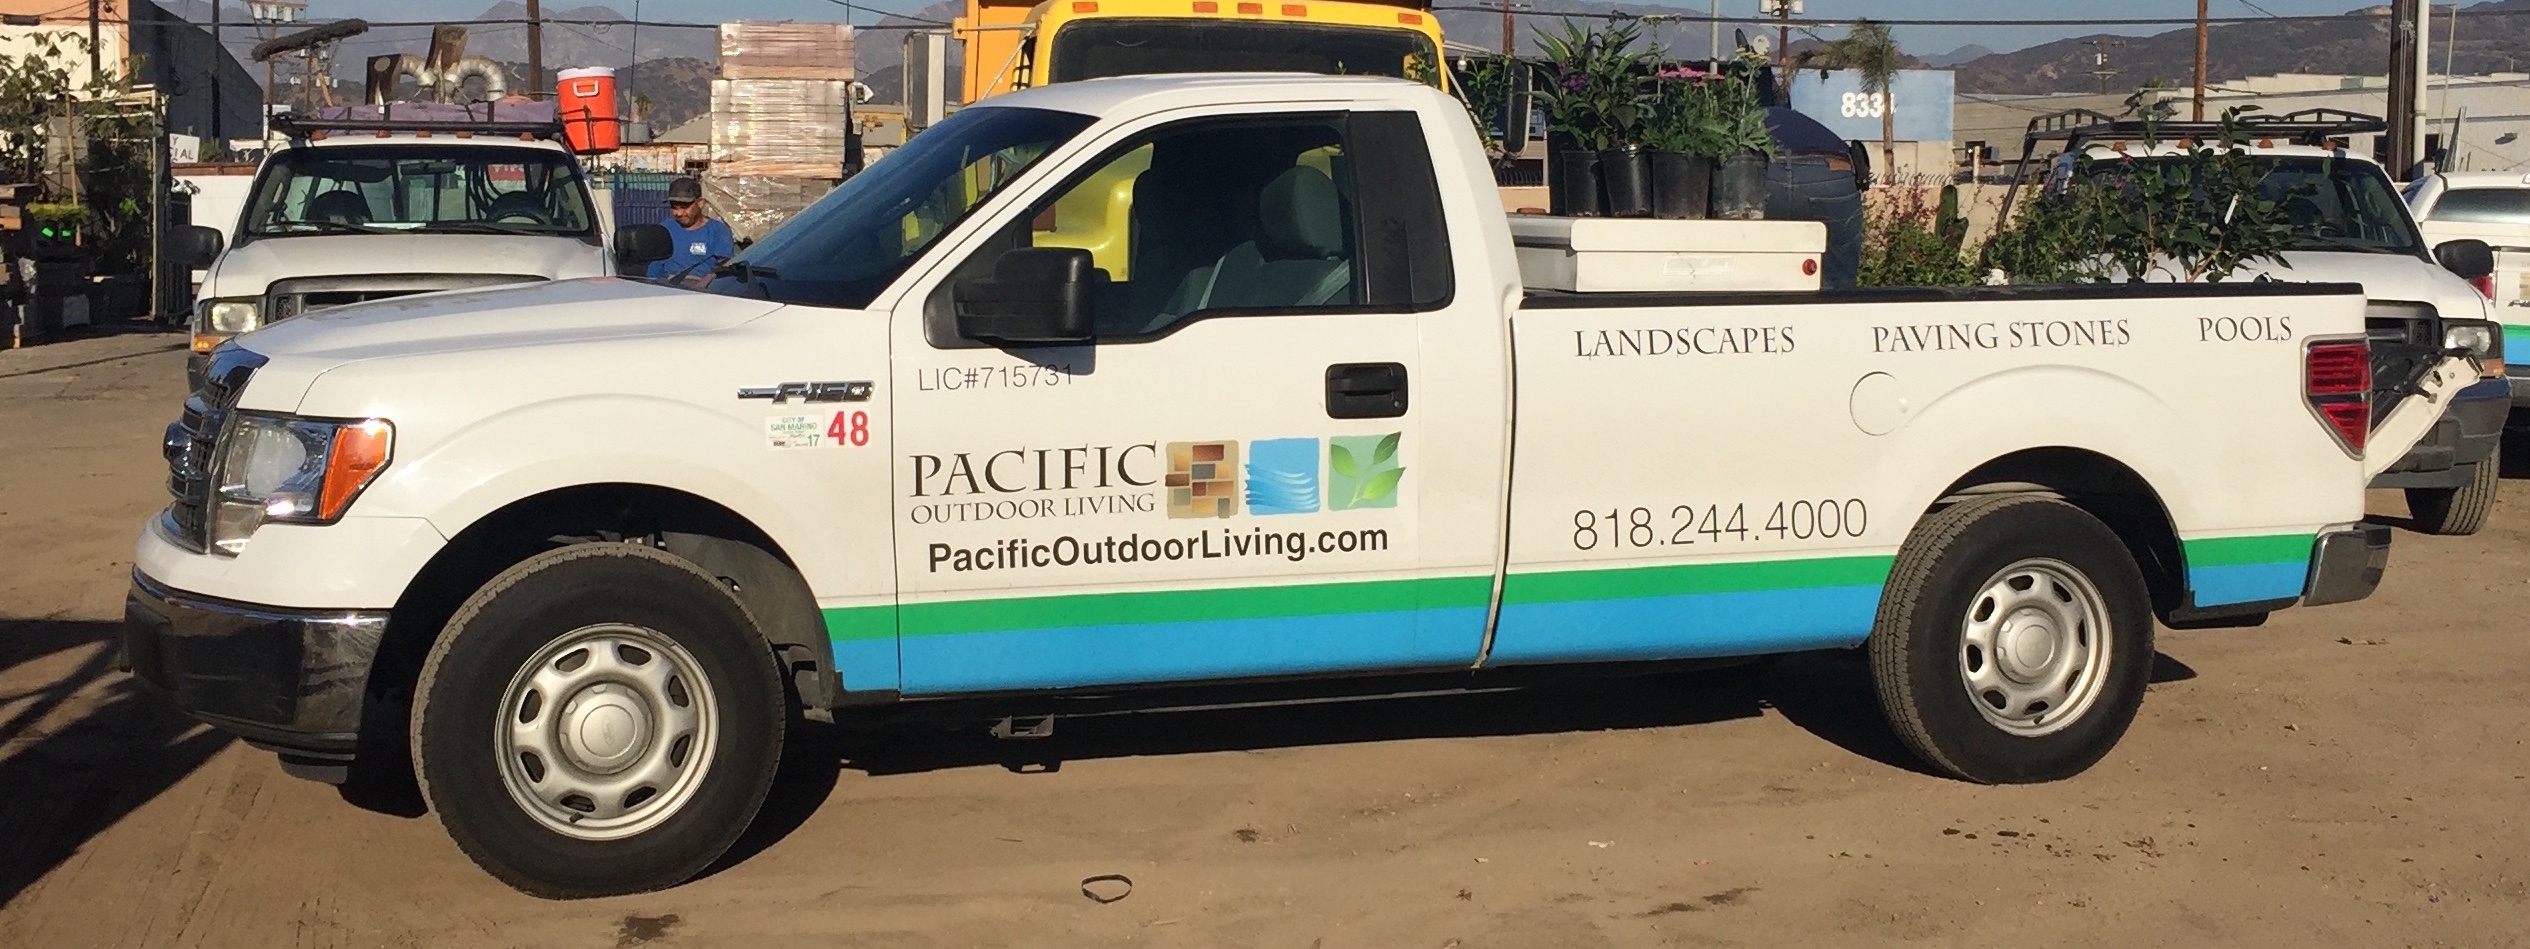 Even partial wrapping of landscaping and lawn care trucks gets advertising impressions.